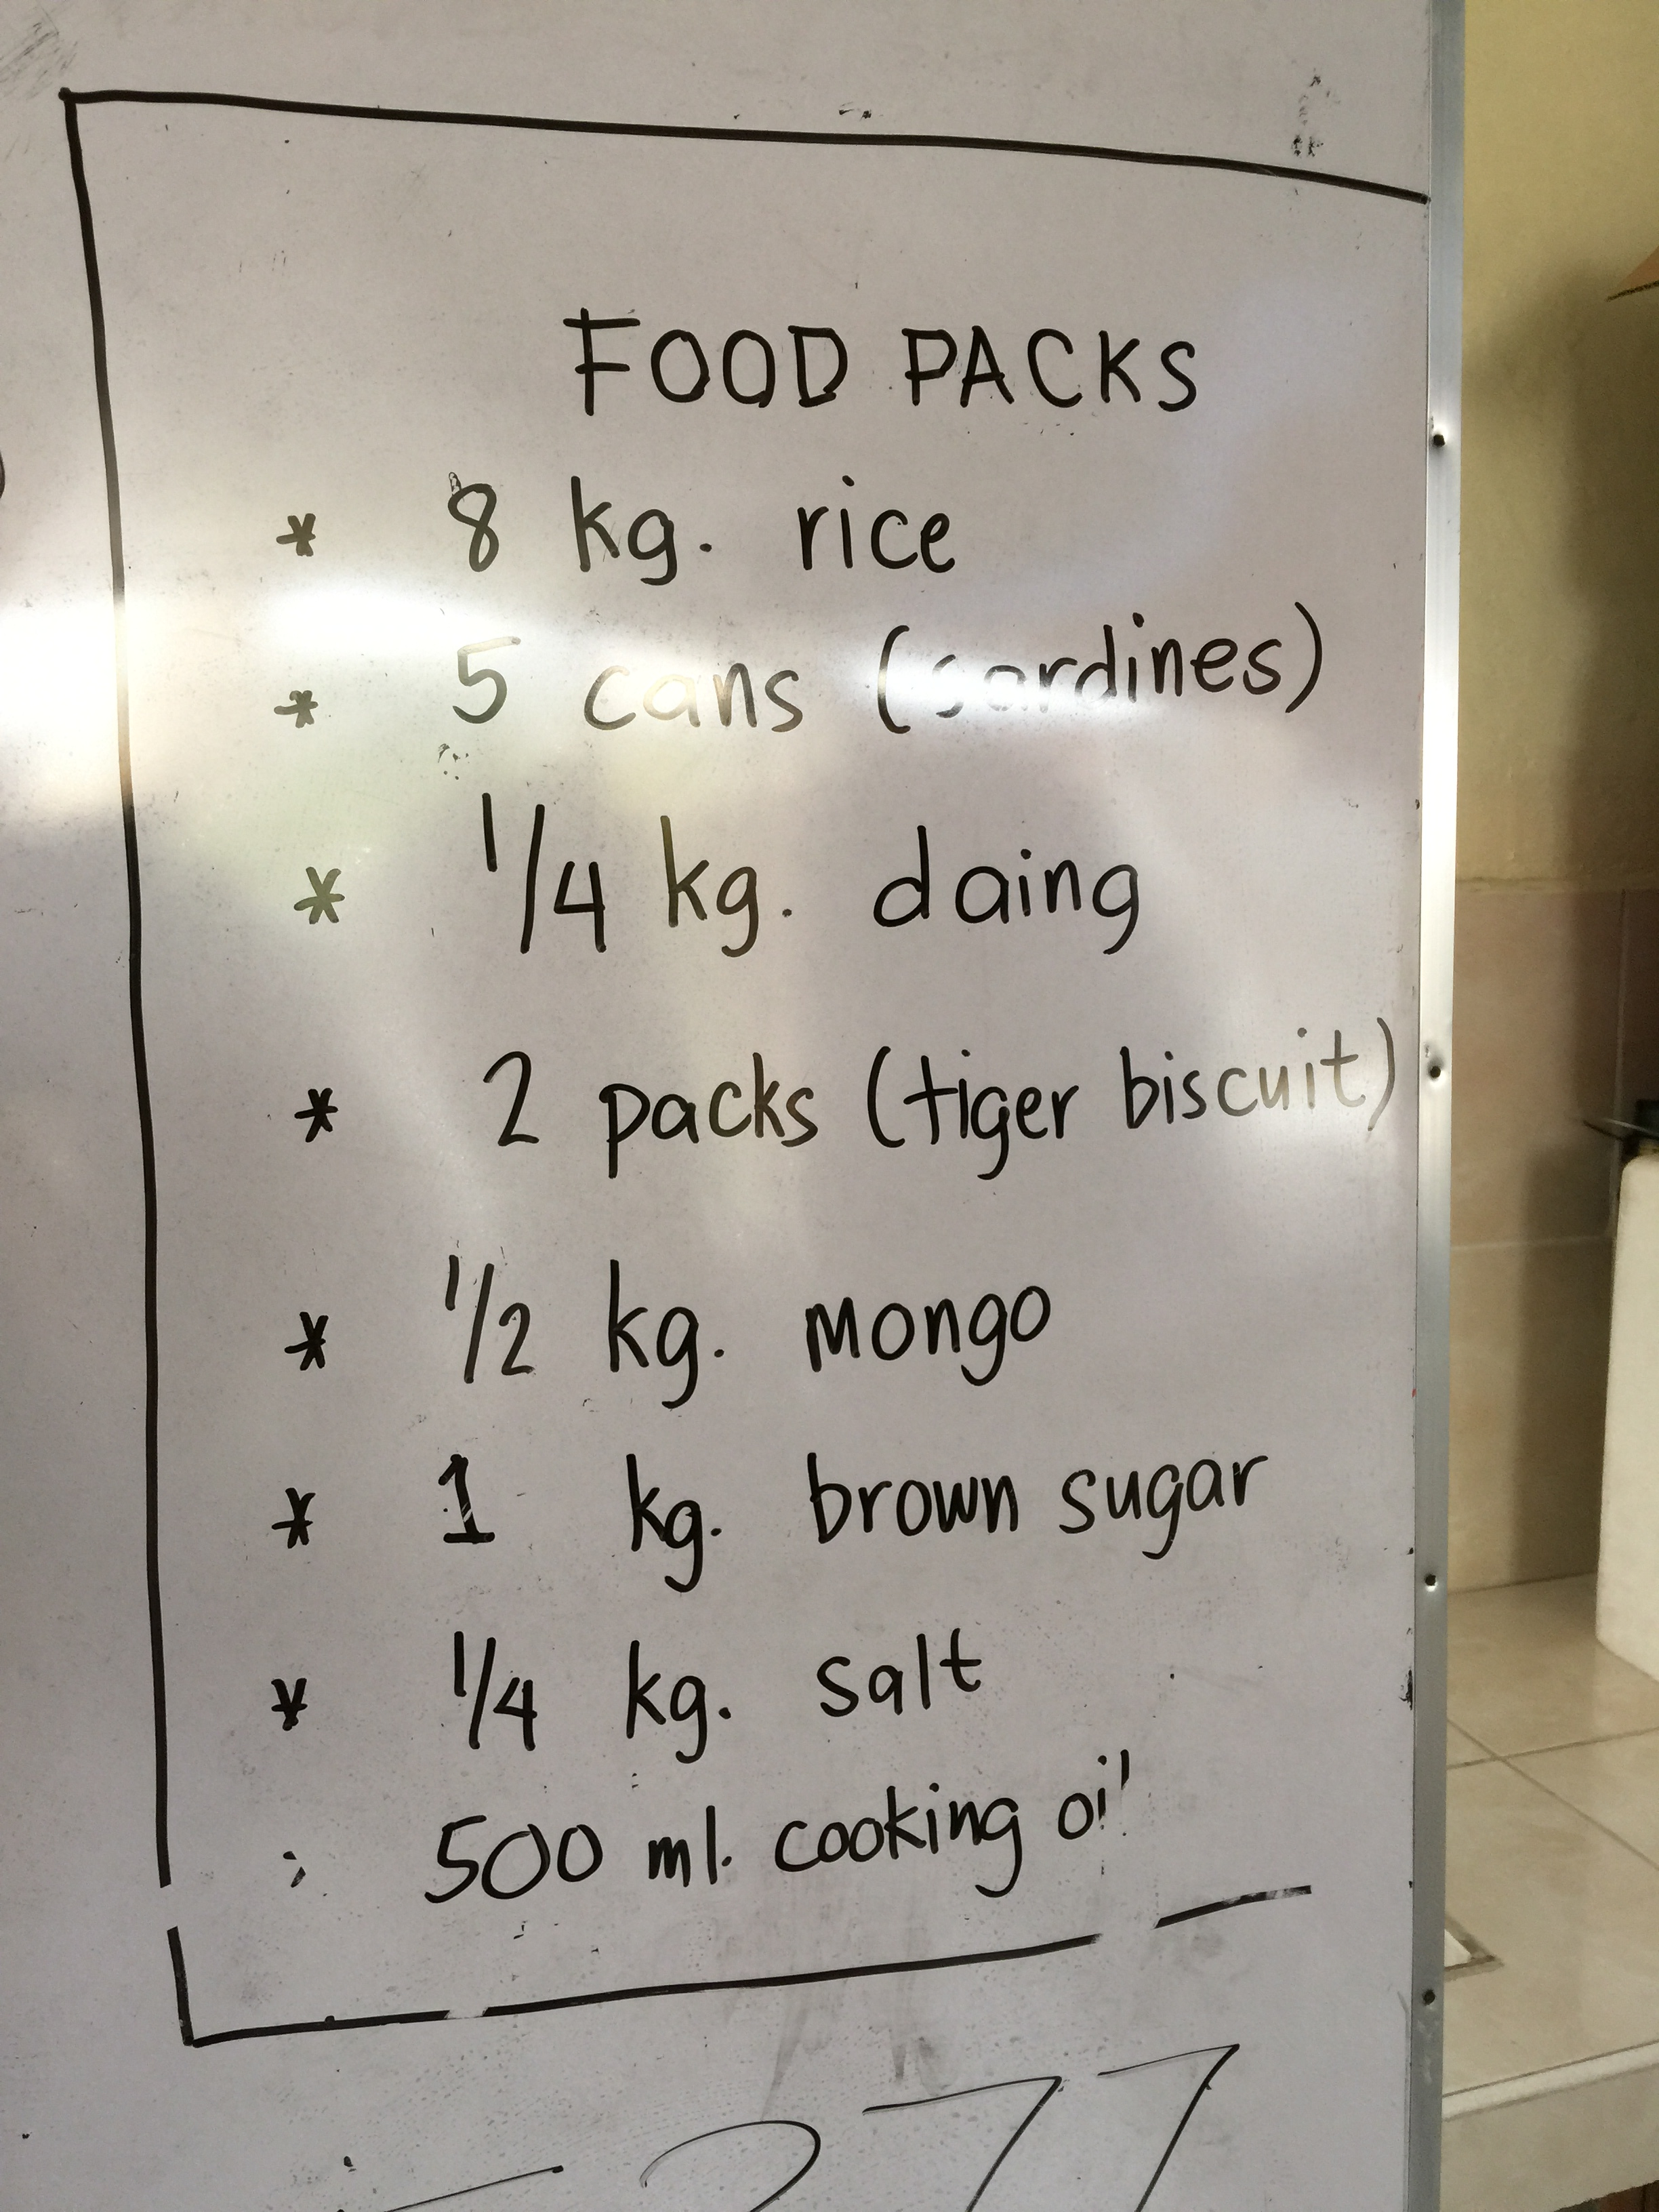 Contents of relief packs.